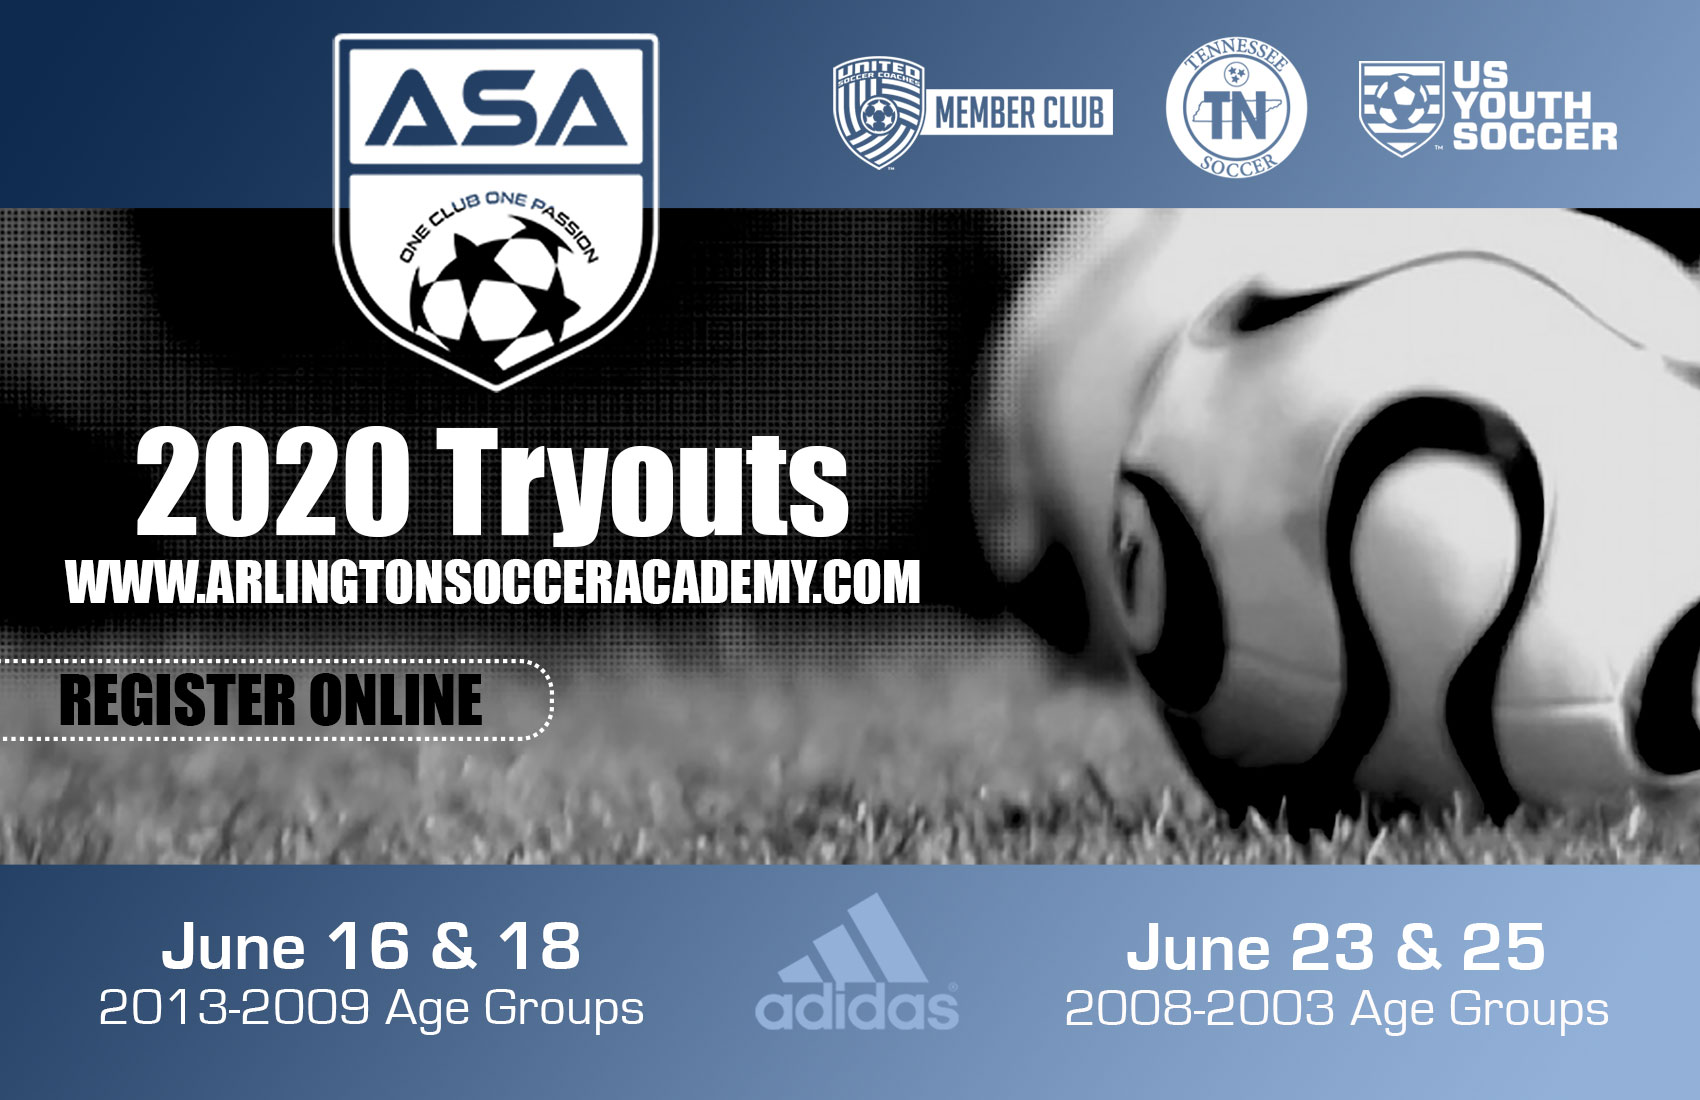 DID YOU MISS TRYOUTS BUT STILL INTERESTED IN JOINING?